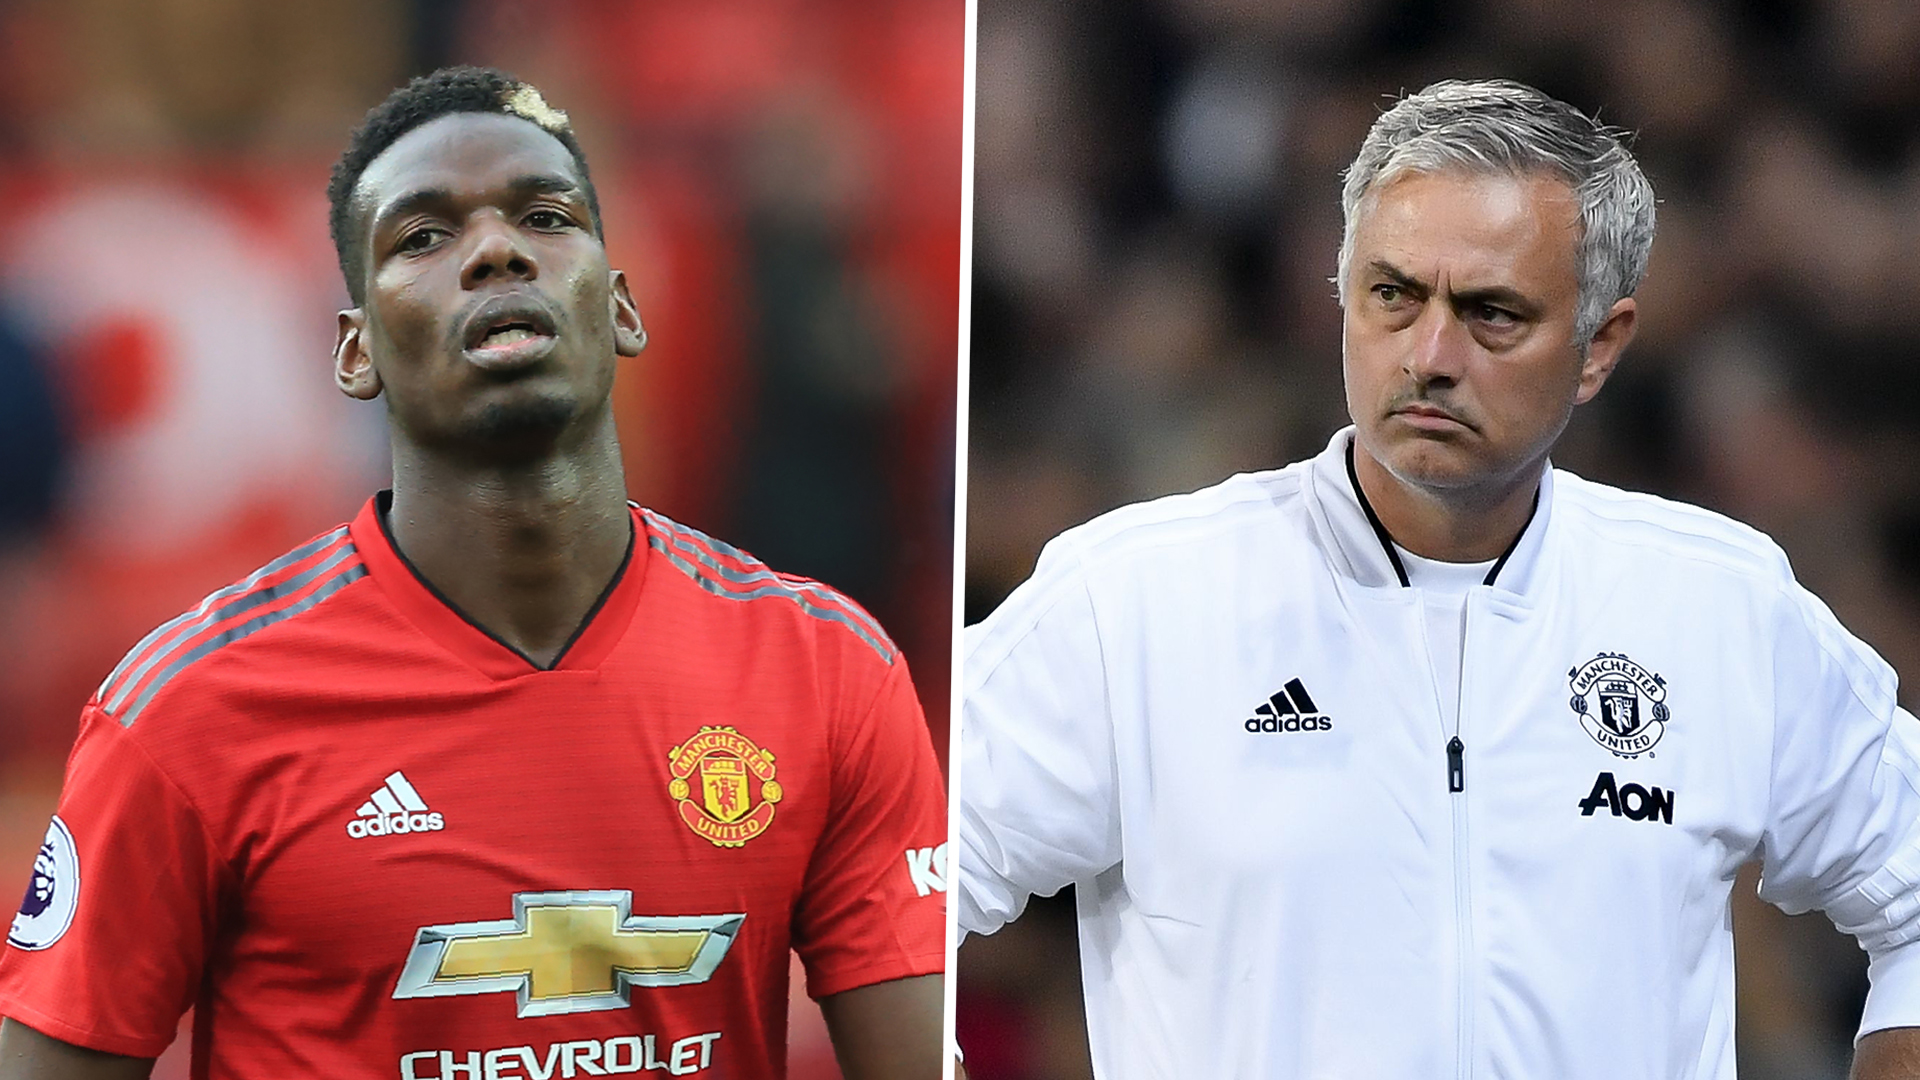 Pogba turns on Mourinho & Man Utd teammates after Wolves draw